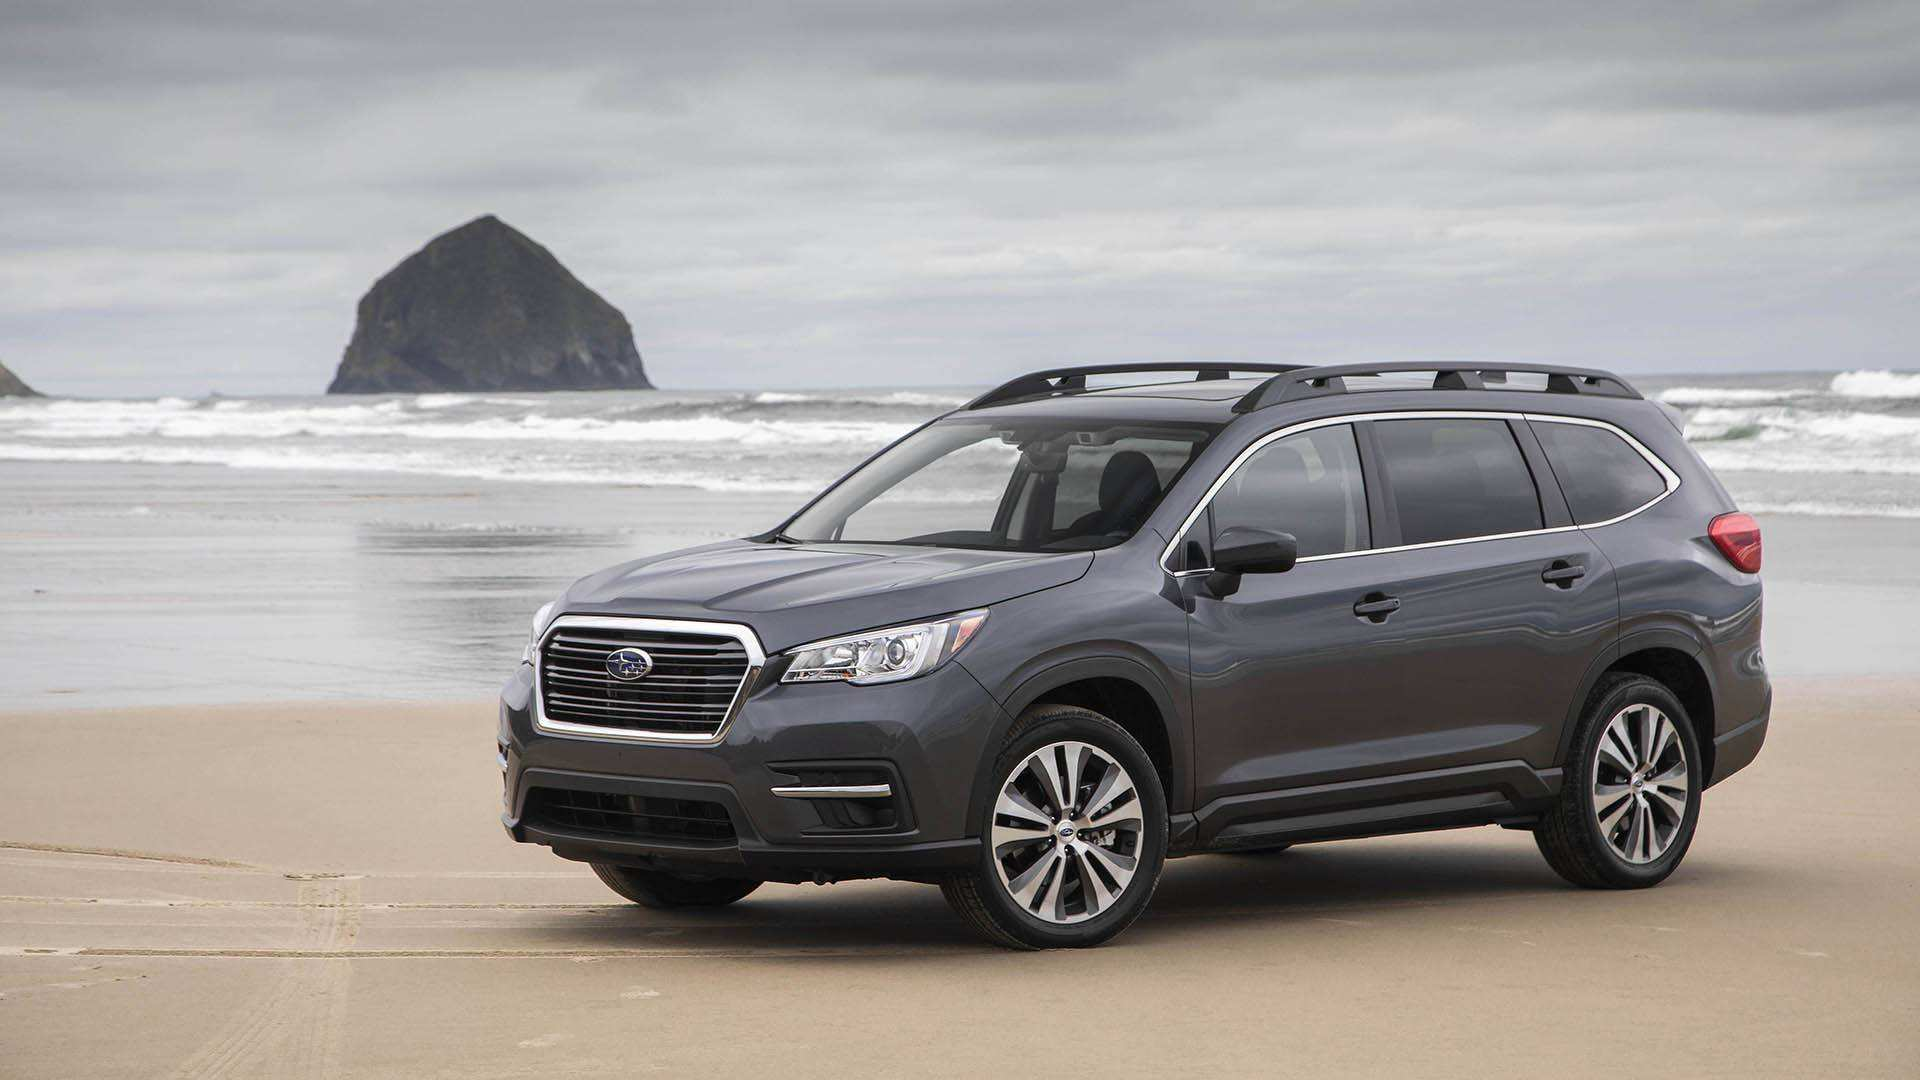 94 The Best 2019 Subaru Ascent Debut New Review